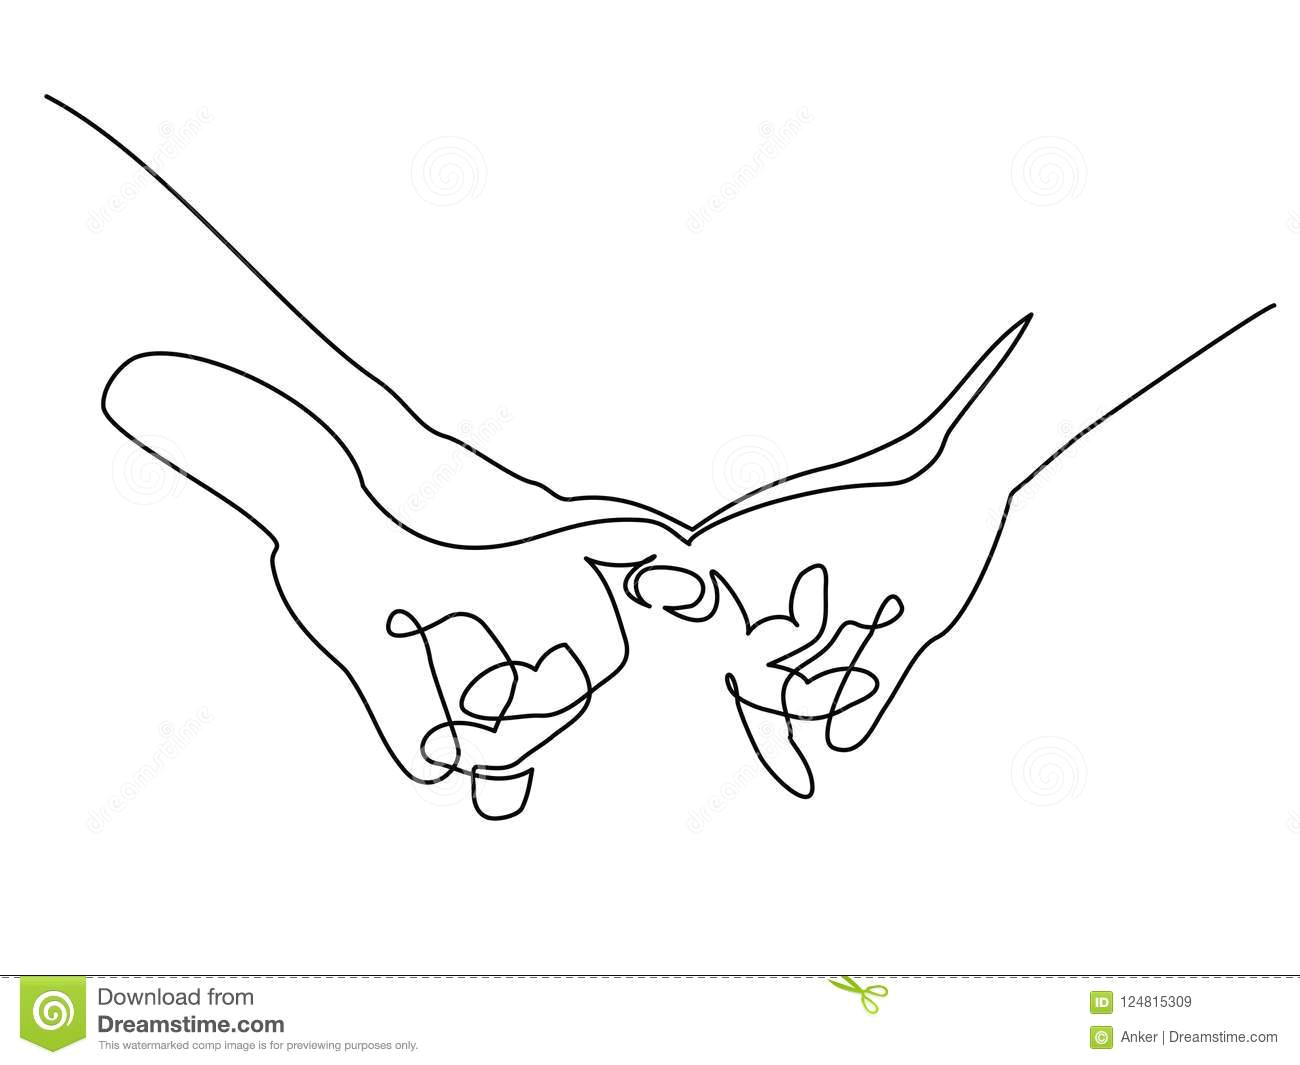 Line Drawing Of Hands Shaking Hands Woman and Man Holding together with Fingers Stock Vector